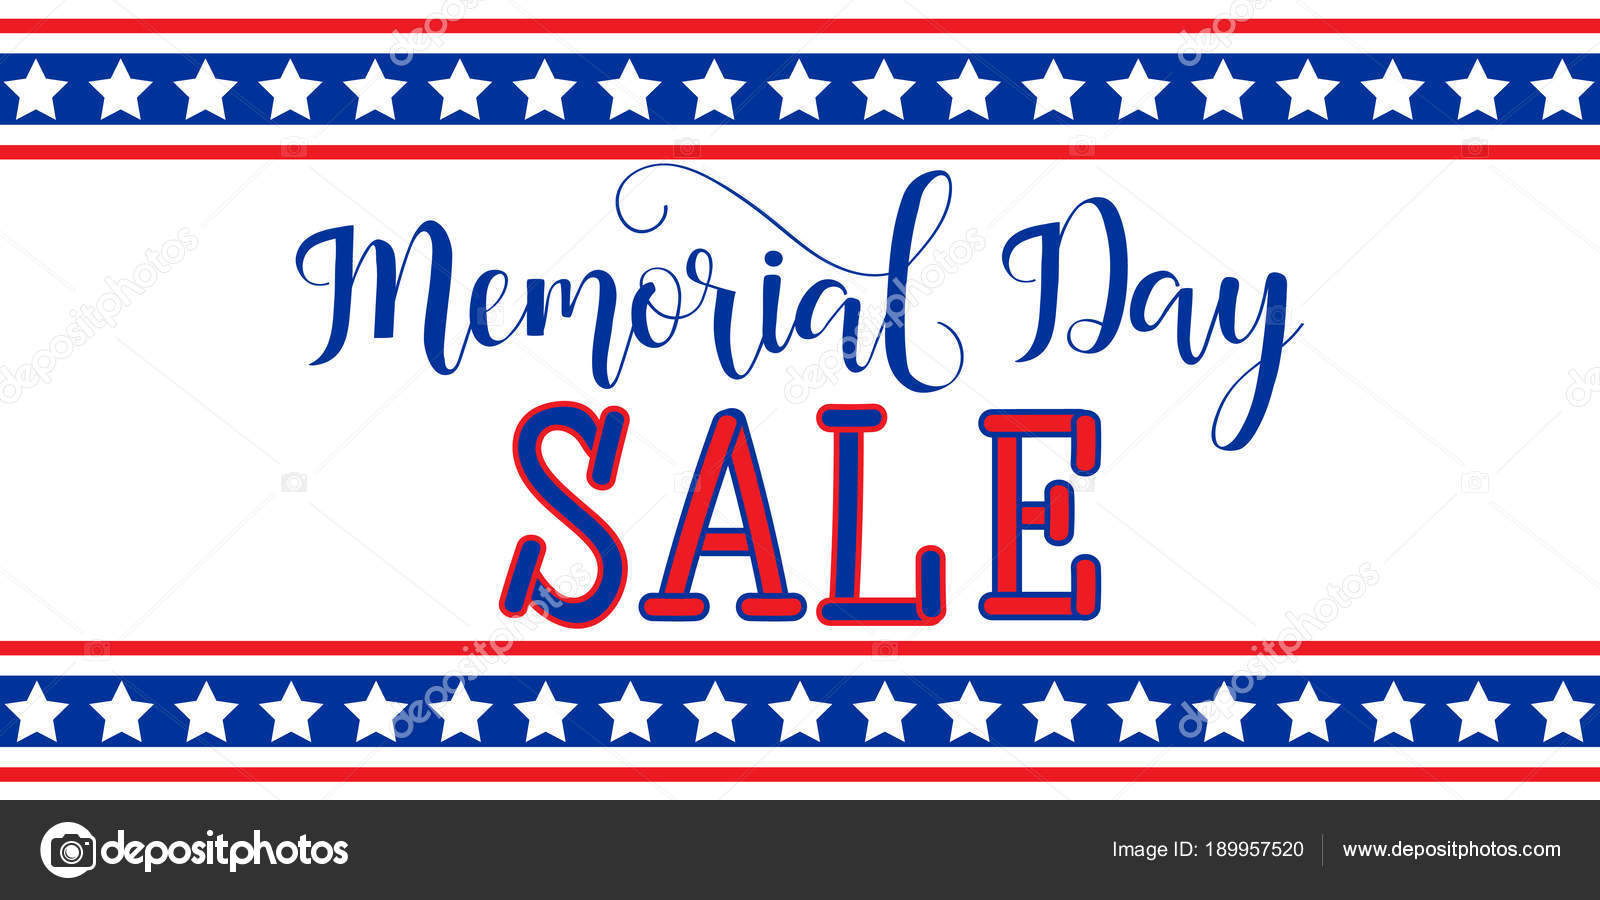 memorial day sale banner template design national american holiday